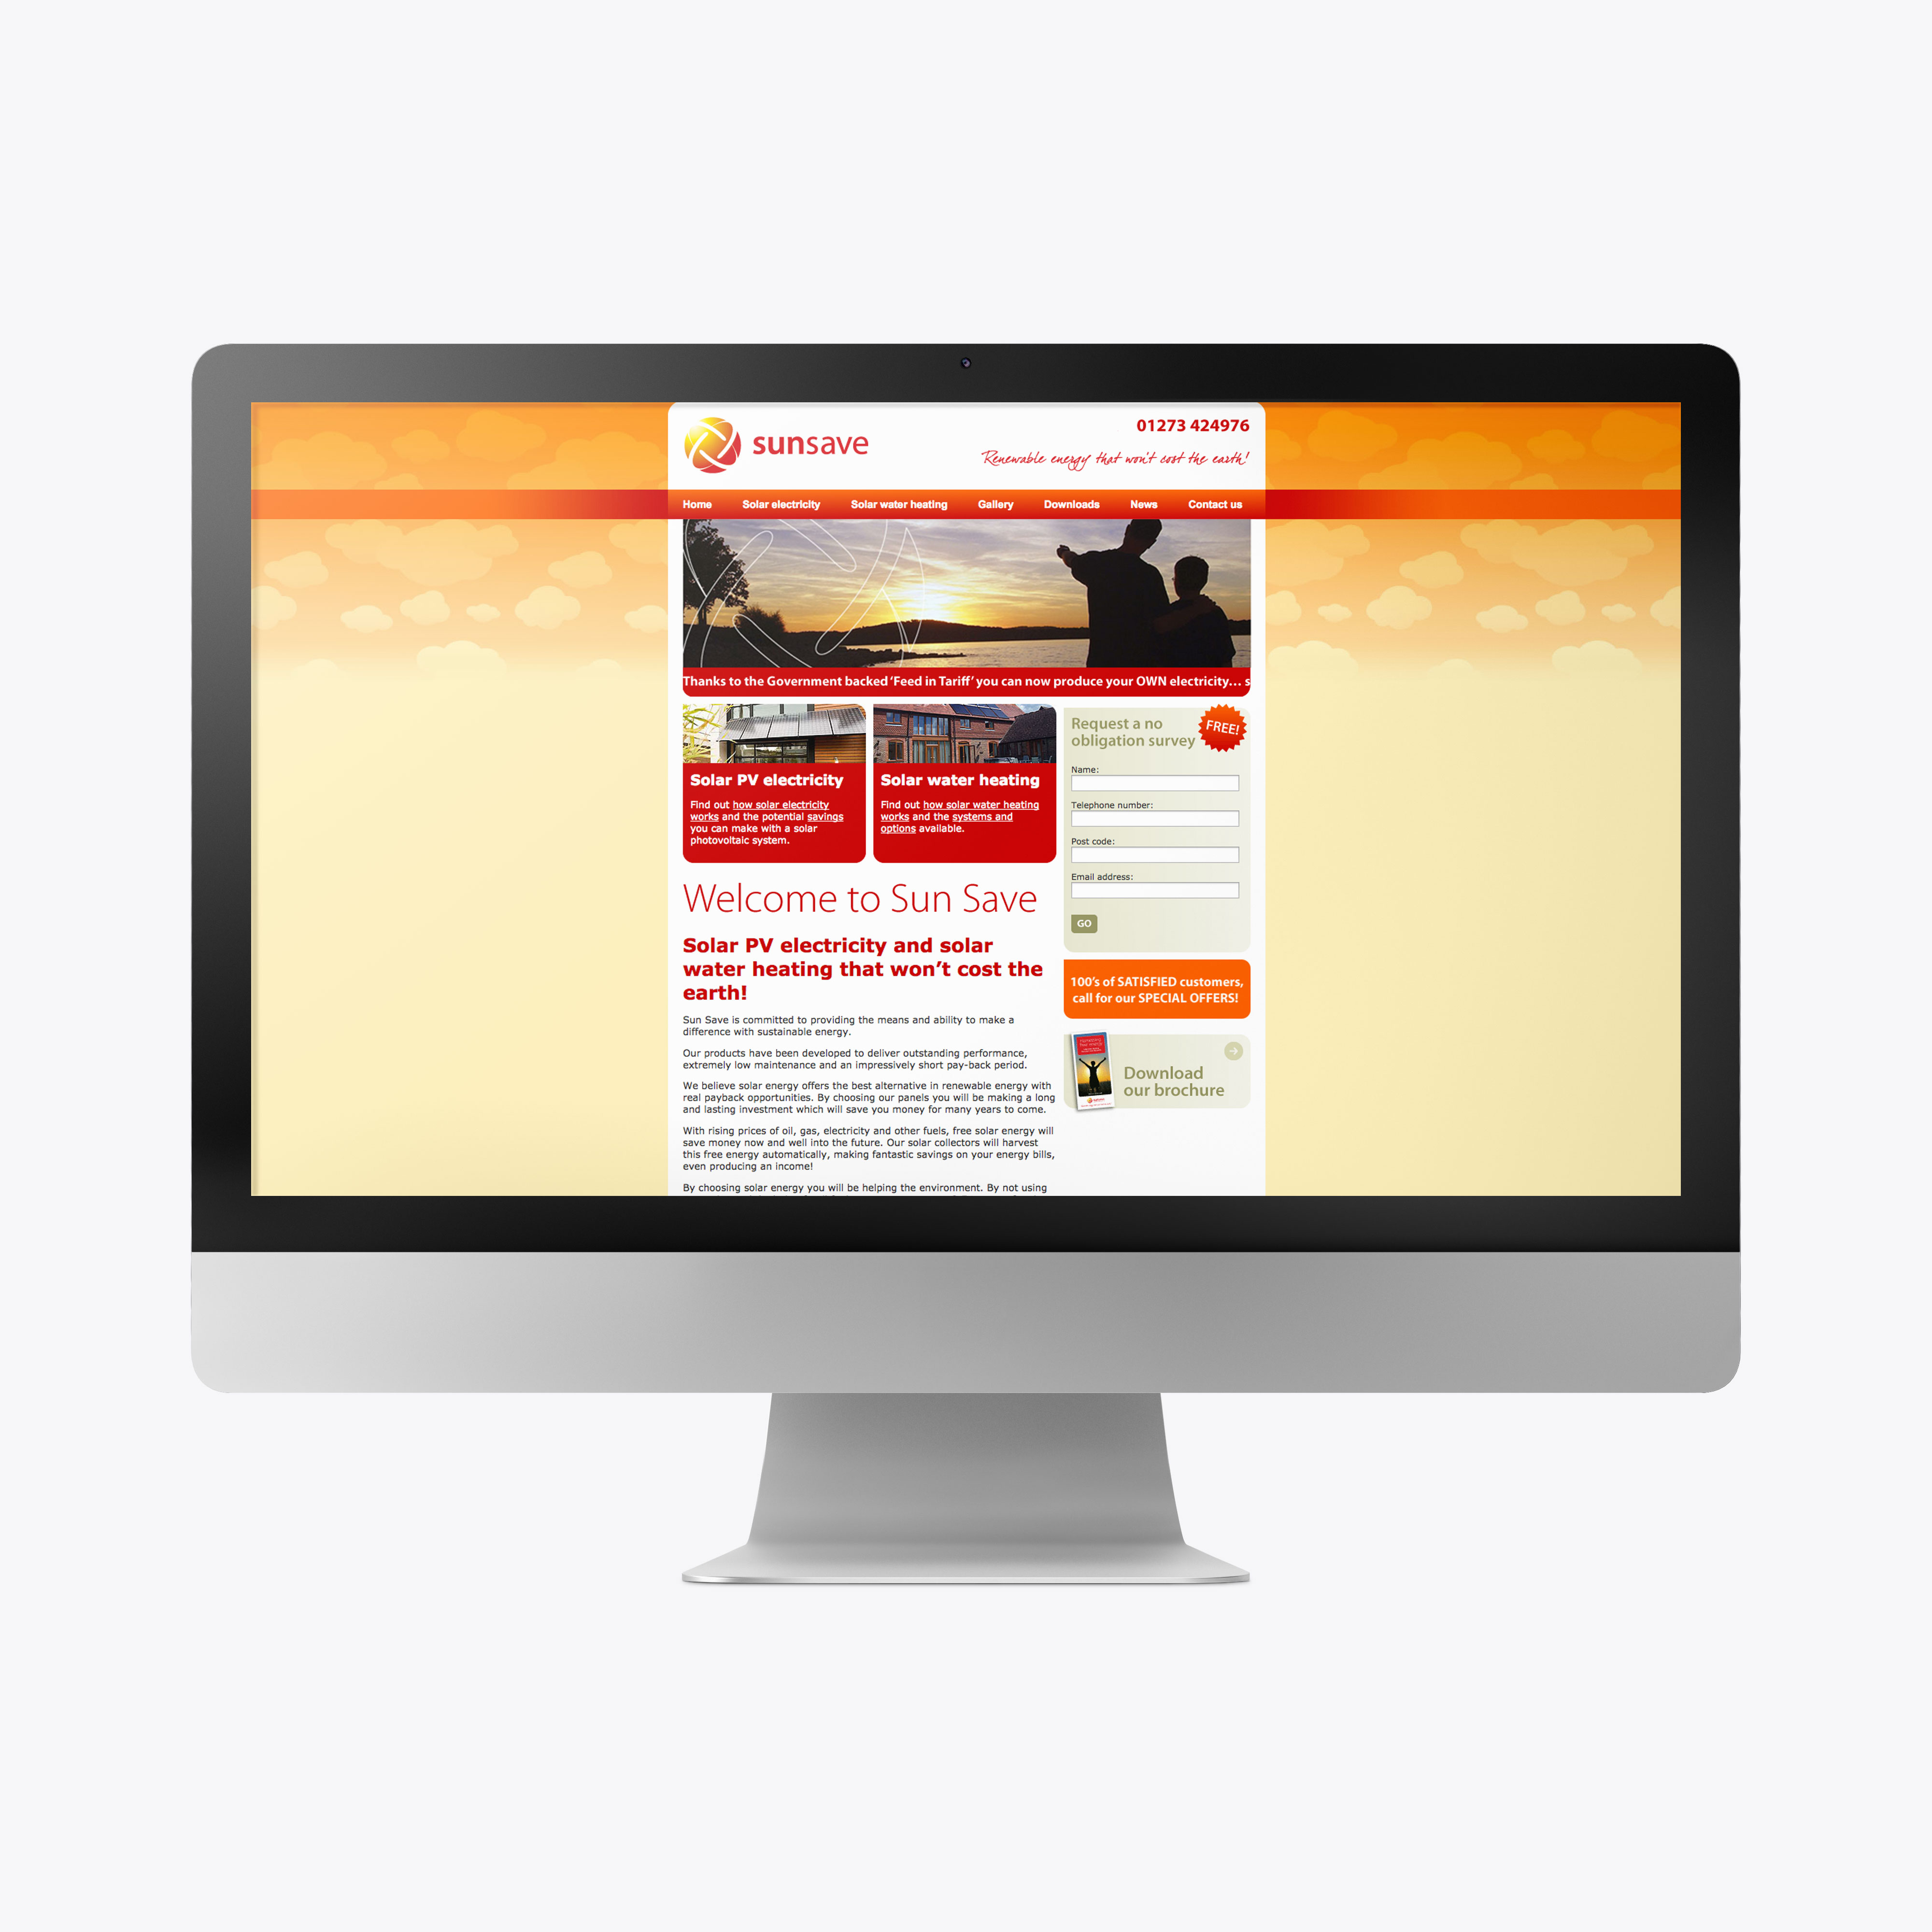 Sun Save website design